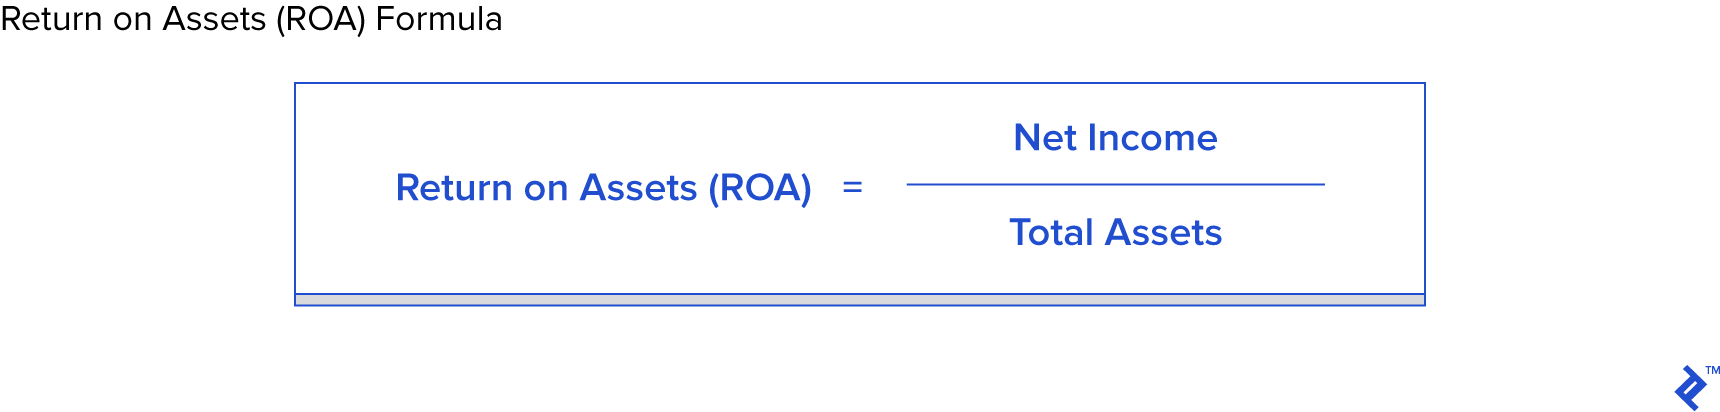 Return on assets ROA formula for return on investment